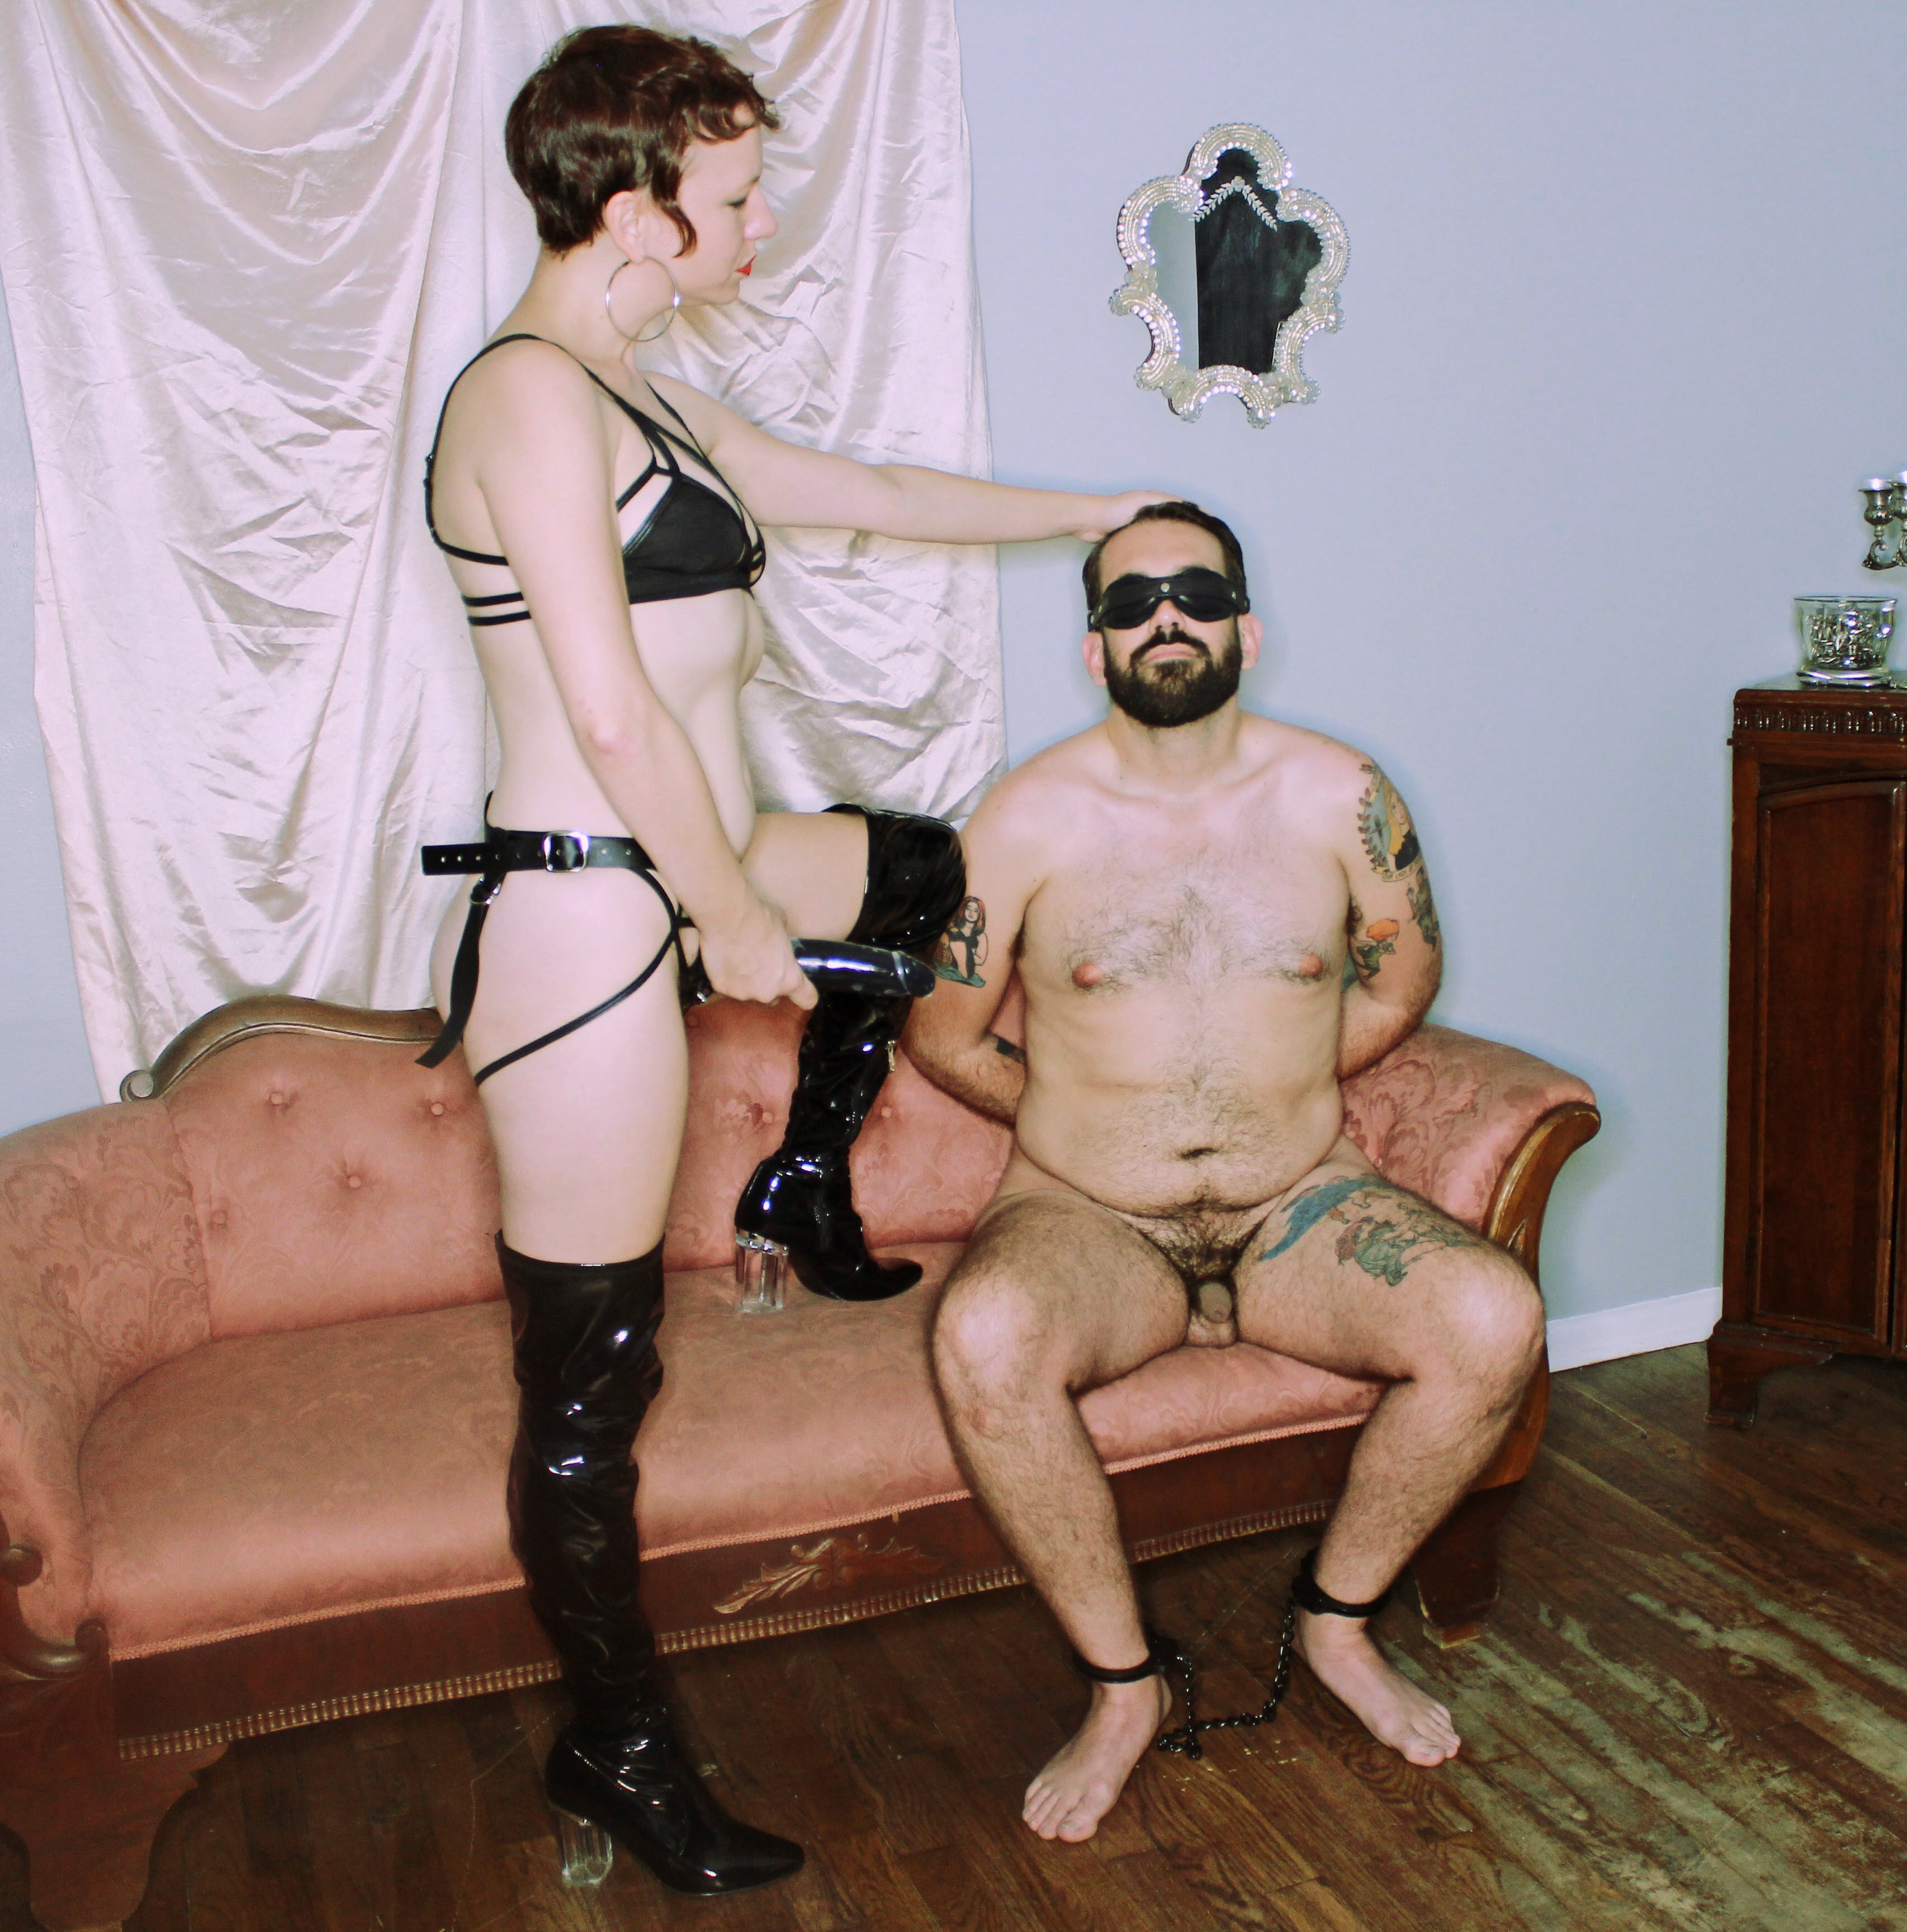 Domme Discordia Professional Dominatrix ProDomme NYC FemDomme Brooklyn